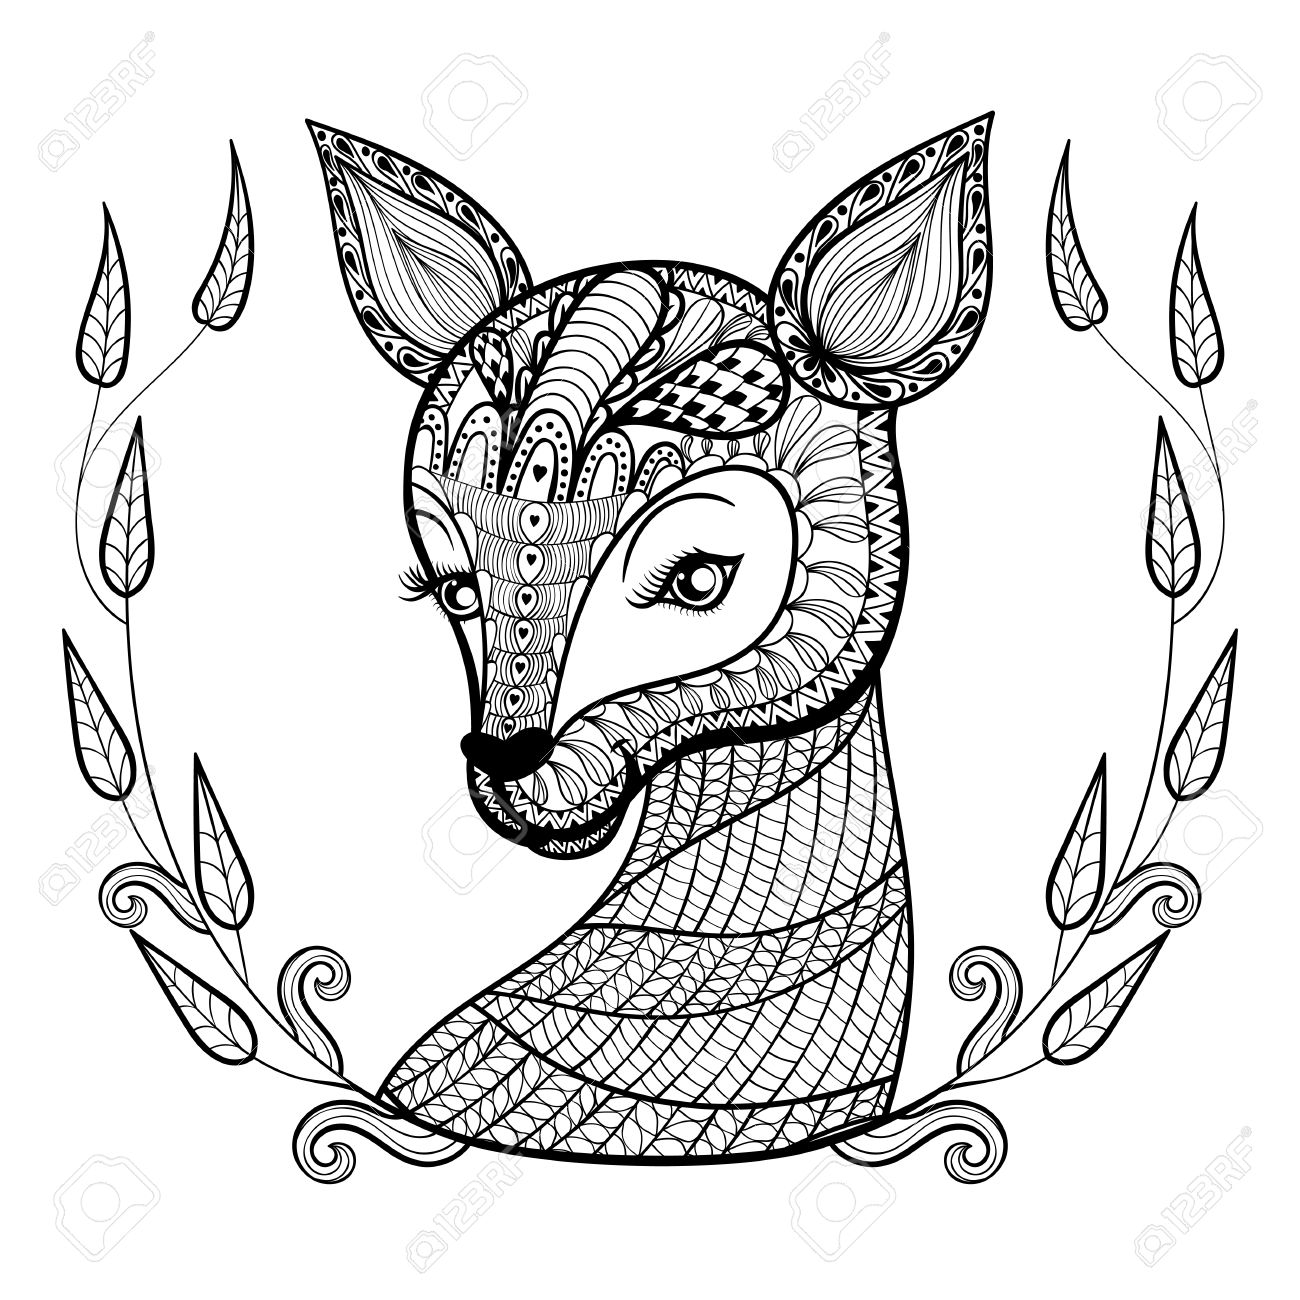 Deer Face Coloring Pages. Hand drawn ethnic ornamental patterned cute deer s face in floral retro  frame doodle zentangle Drawn Ethnic Ornamental Patterned Cute Deer Face In Floral